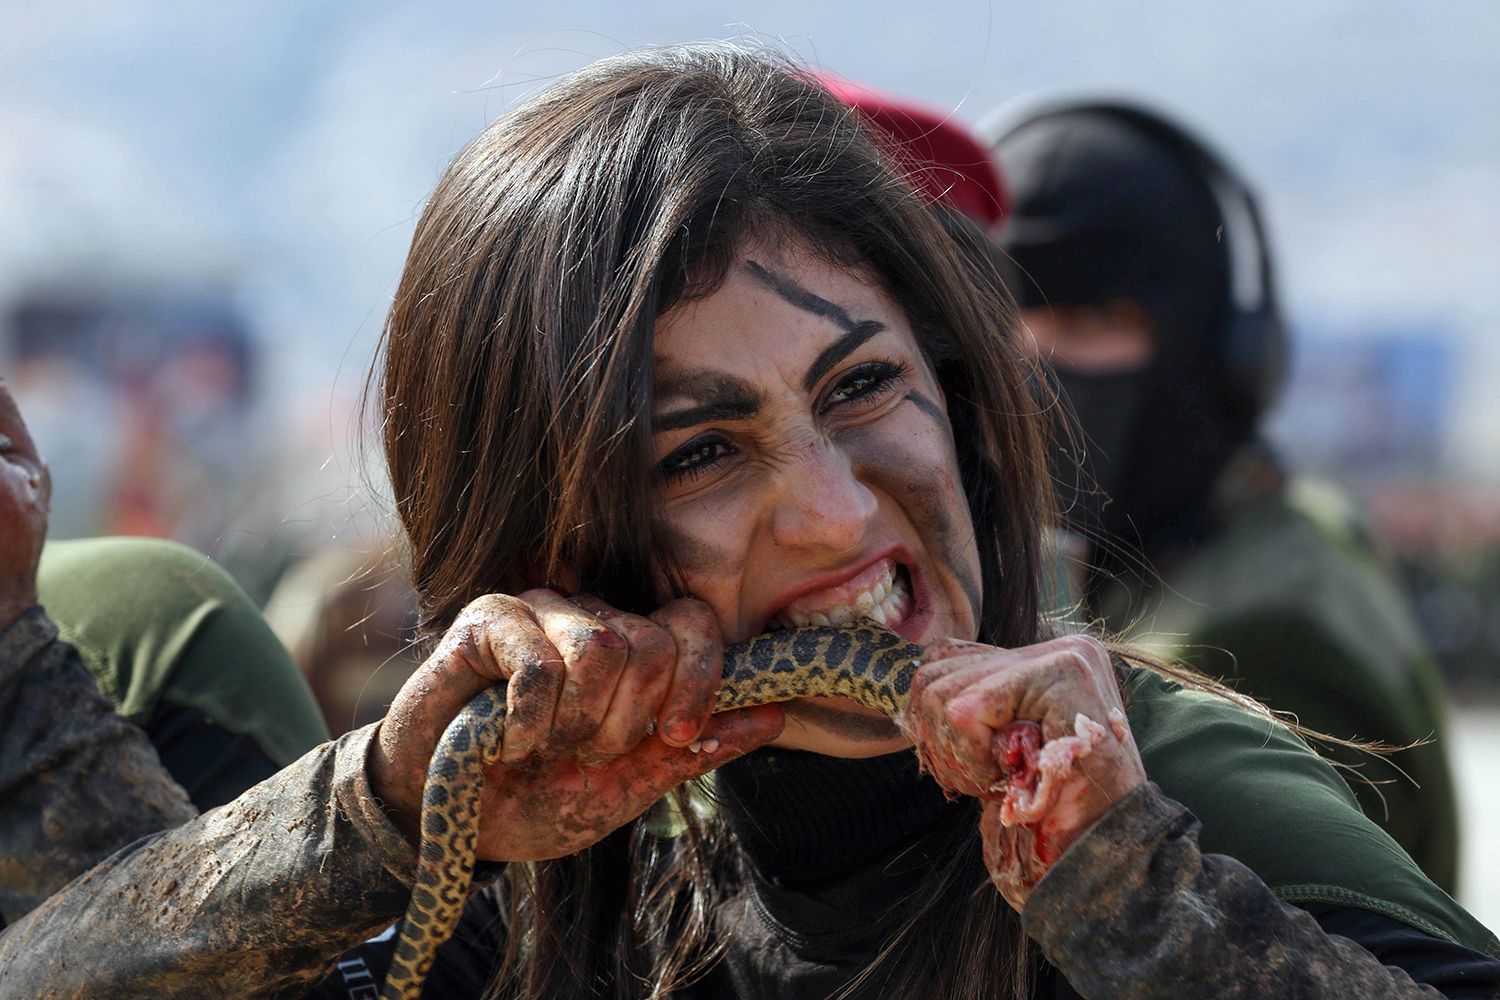 An Iraqi Kurdish Peshmerga officer bites a snake while demonstrating skills during a graduation ceremony in the Kurdish town of Soran, northeast of the capital of Iraq's autonomous Kurdish region Arbil, on Feb. 12. SAFIN HAMED/AFP via Getty Images